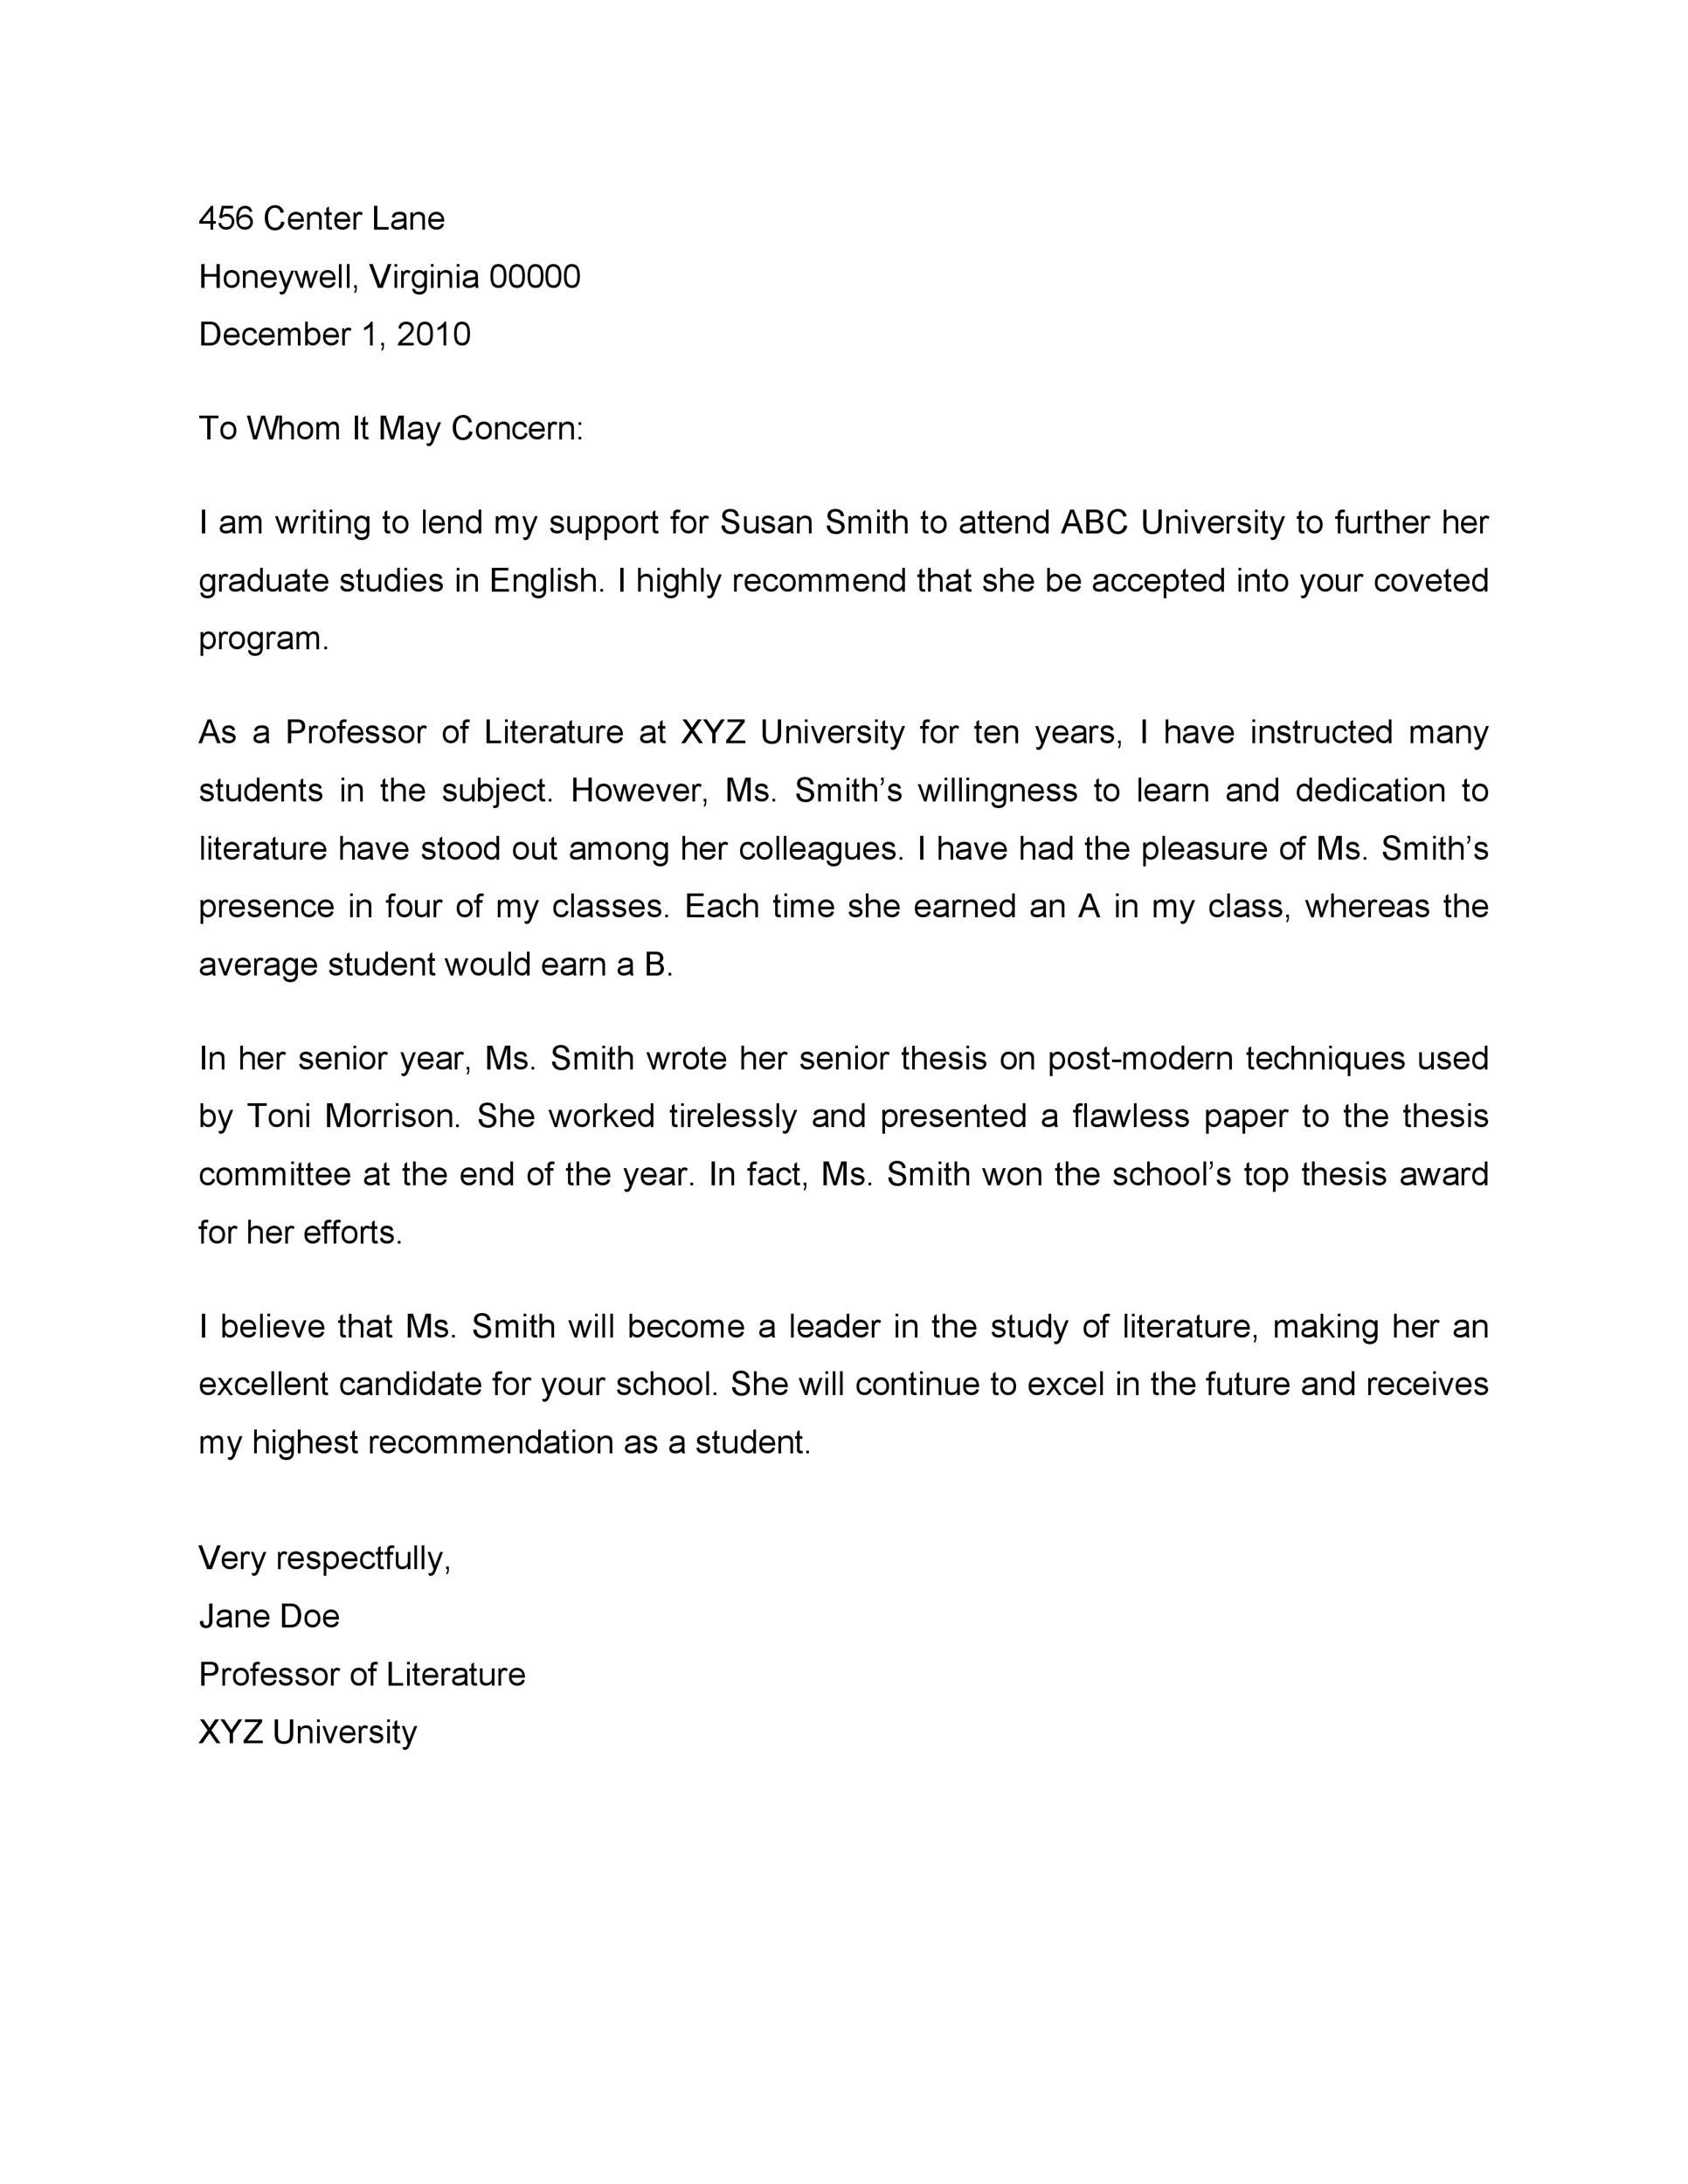 Free Recommendation Letter From Teacher Template 23